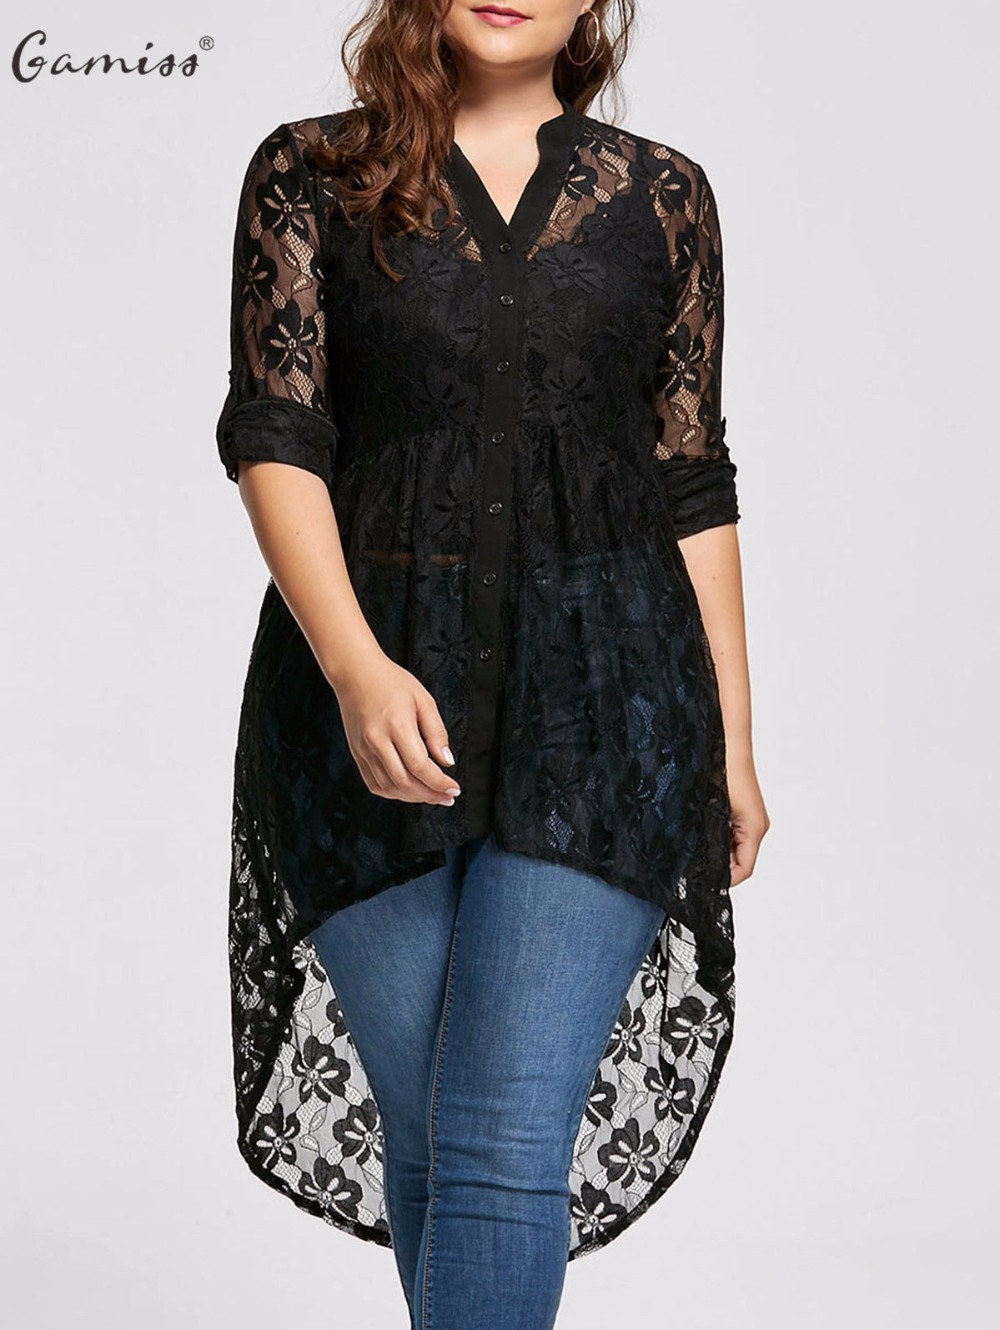 Gamiss Women Plus Size Blouse Autumn peplum Long Sleeve High Low Lace Shirts Tunic Through Button Up Women Tops and Blouse 5XL